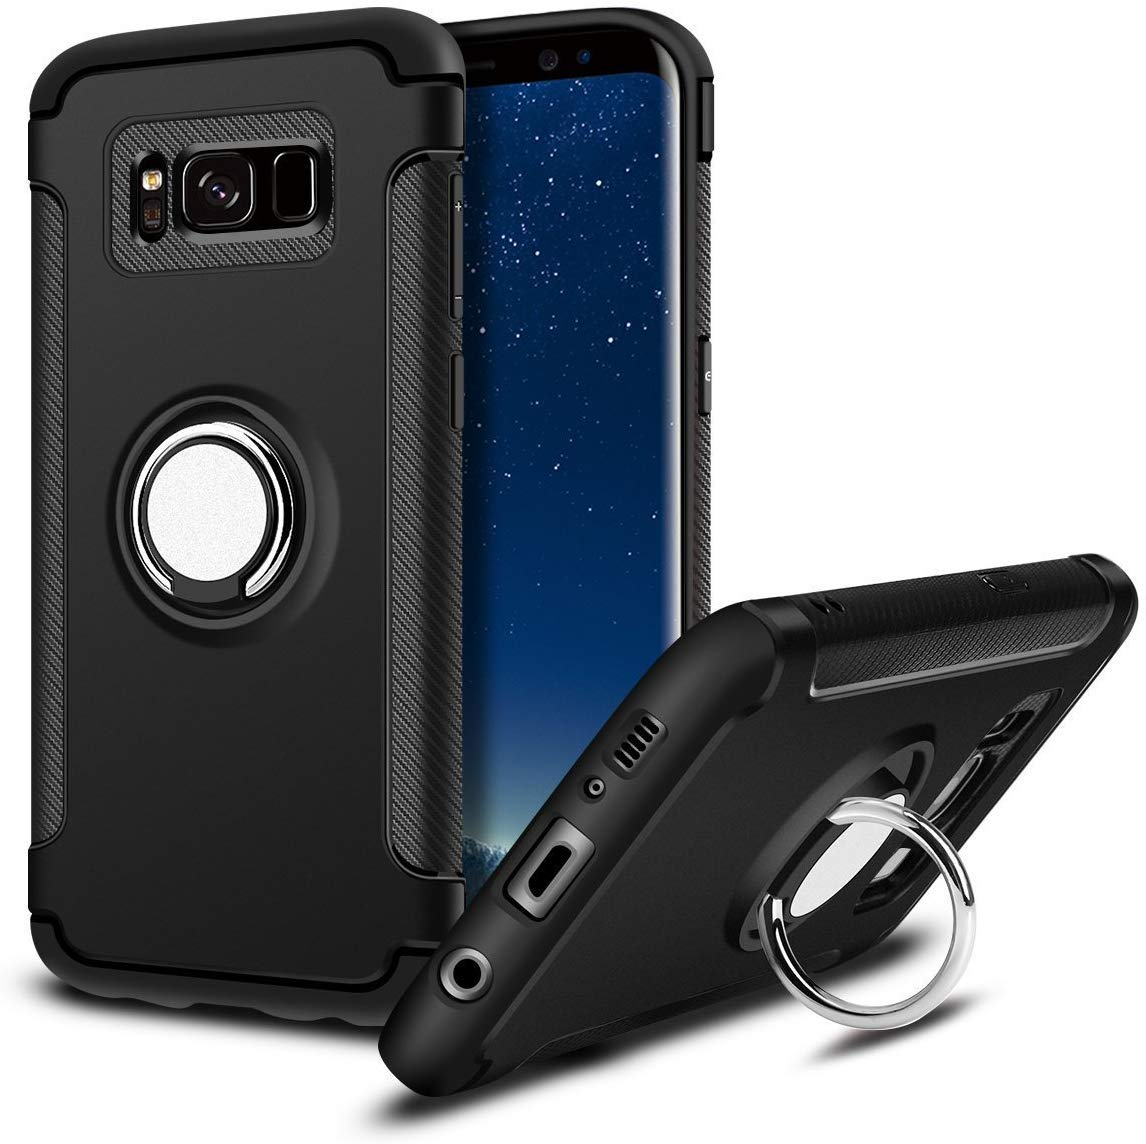 Samsung Galaxy S8 Plus (6.2 inch) Multifunction Hybrid Shockproof with Kickstand Protective Bumper Cover (Black) by Niuta..